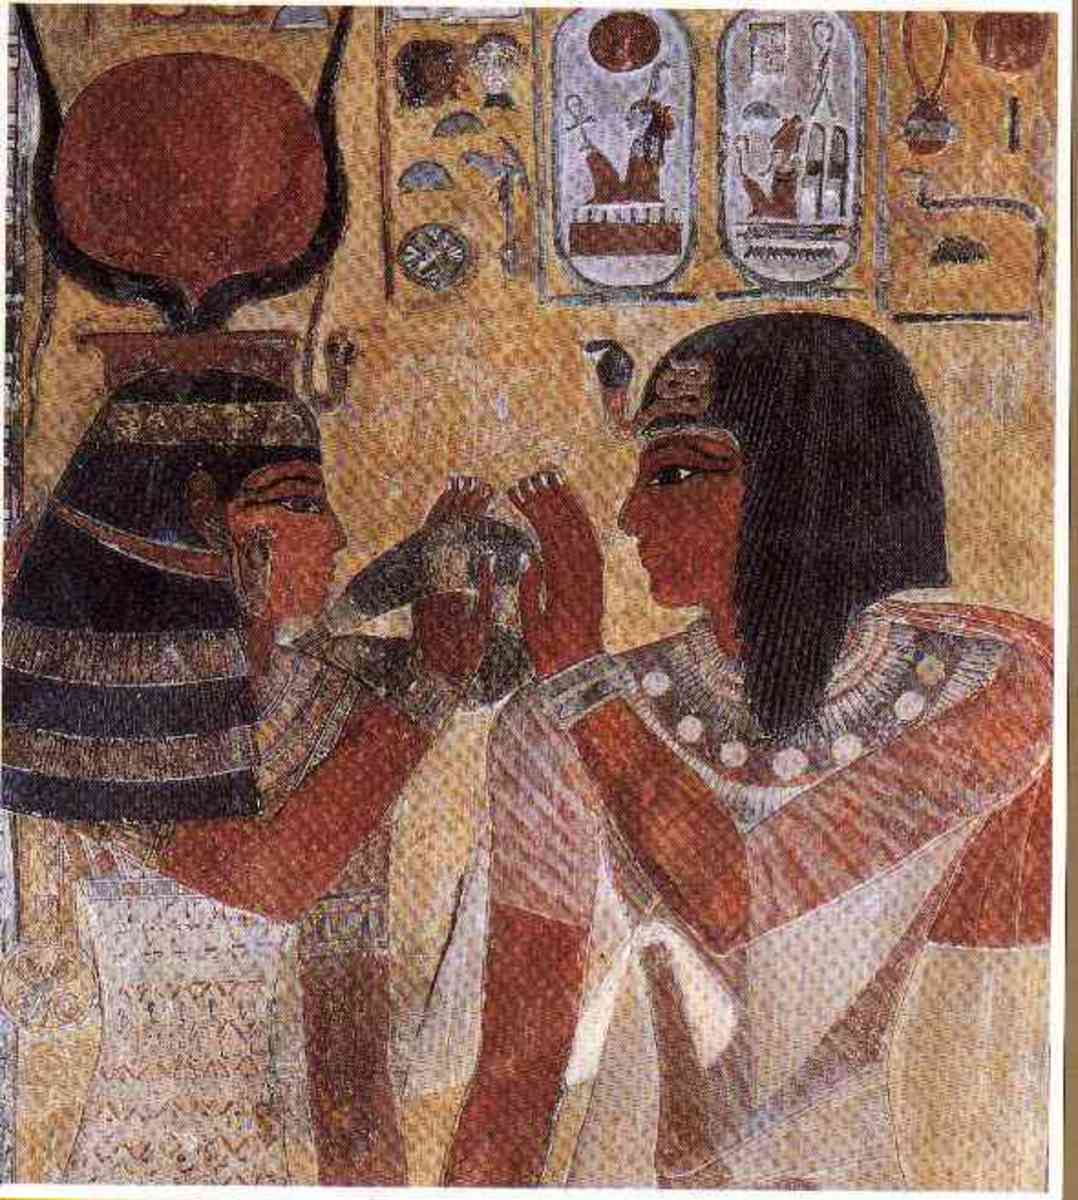 The egyptians were using make up as early as 4000BC!